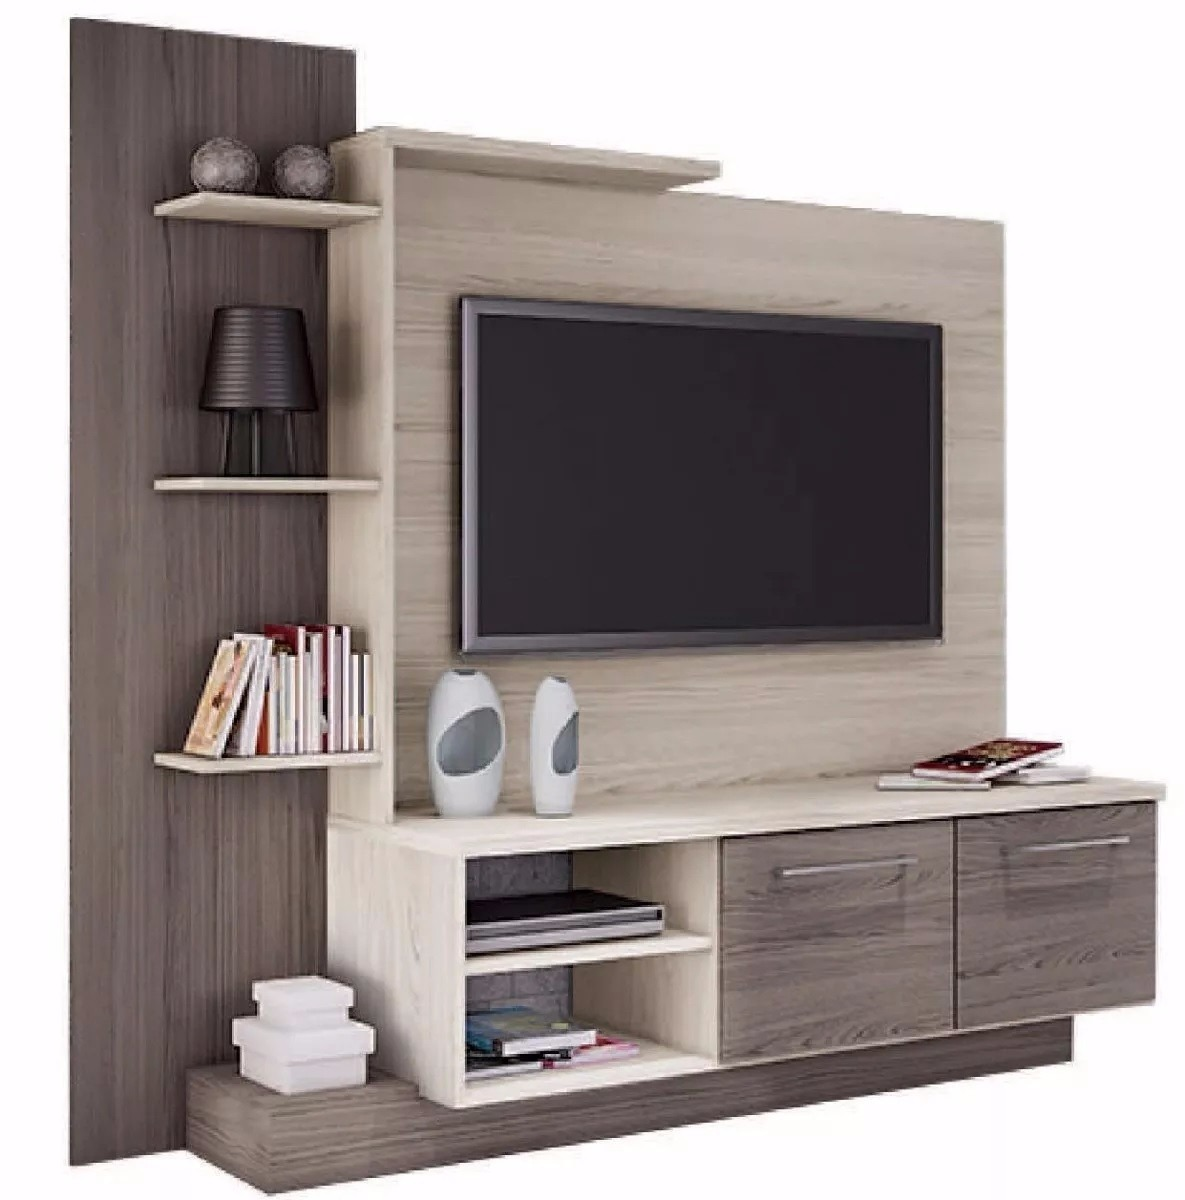 rack tv mesa led lcd mueble de comedor modular home theater en mercado libre. Black Bedroom Furniture Sets. Home Design Ideas